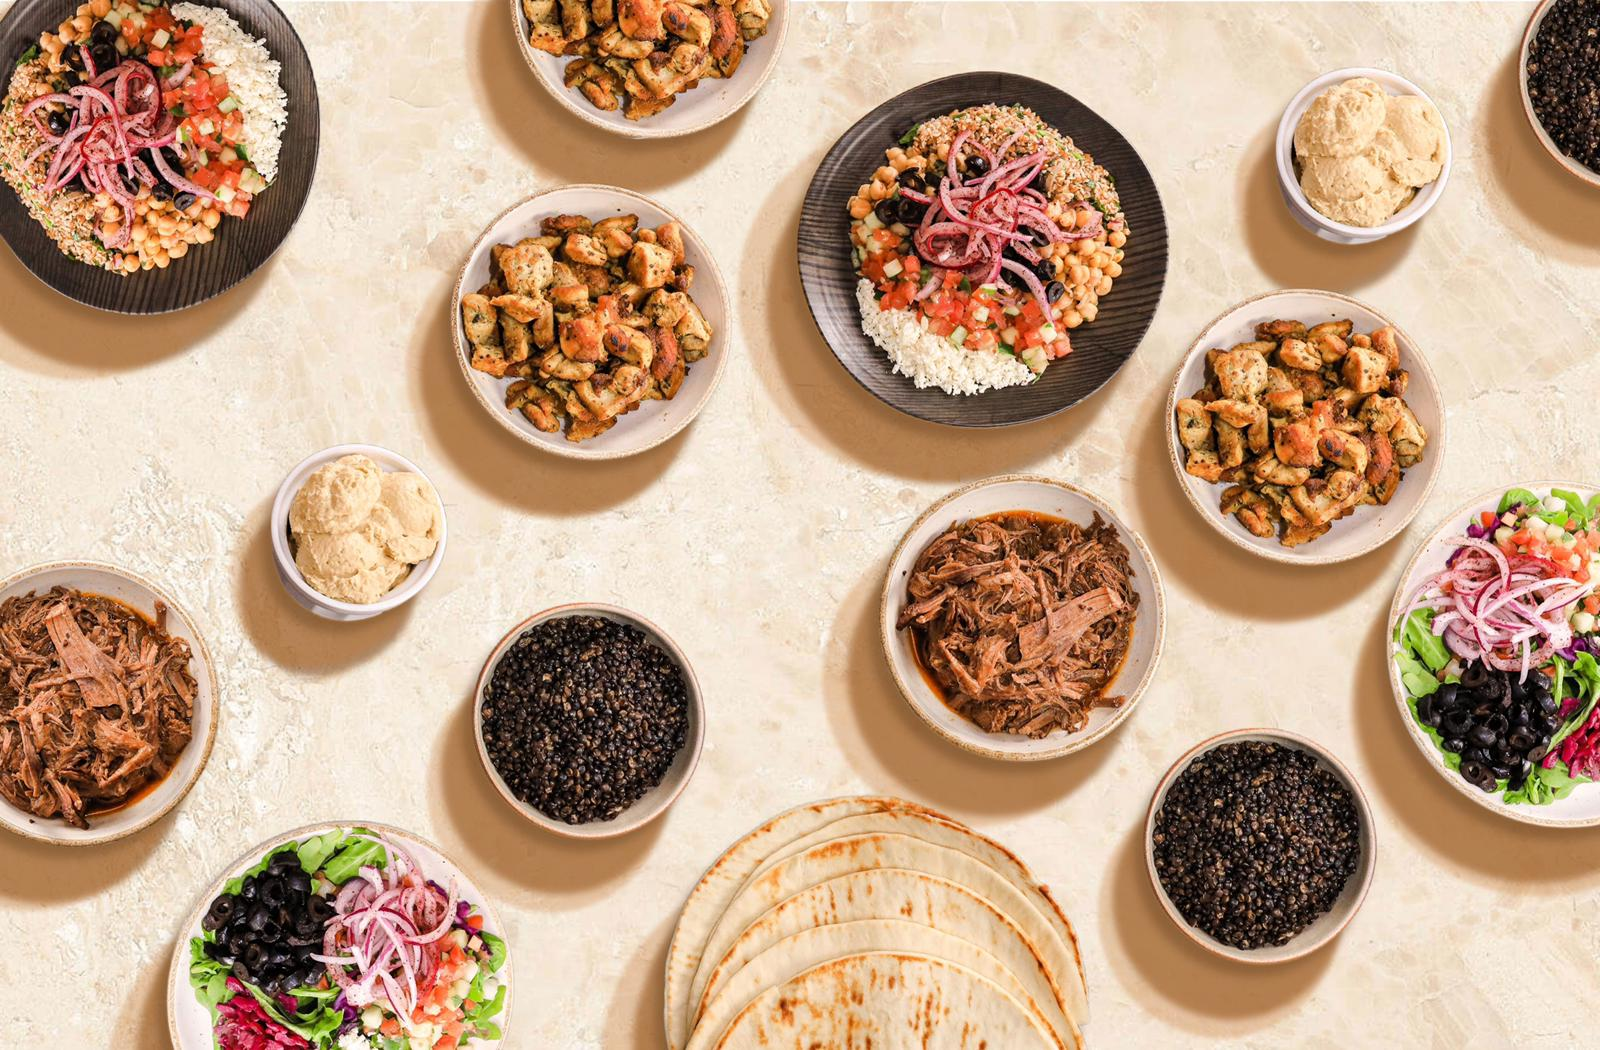 A variety of Mediterranean dishes on a table